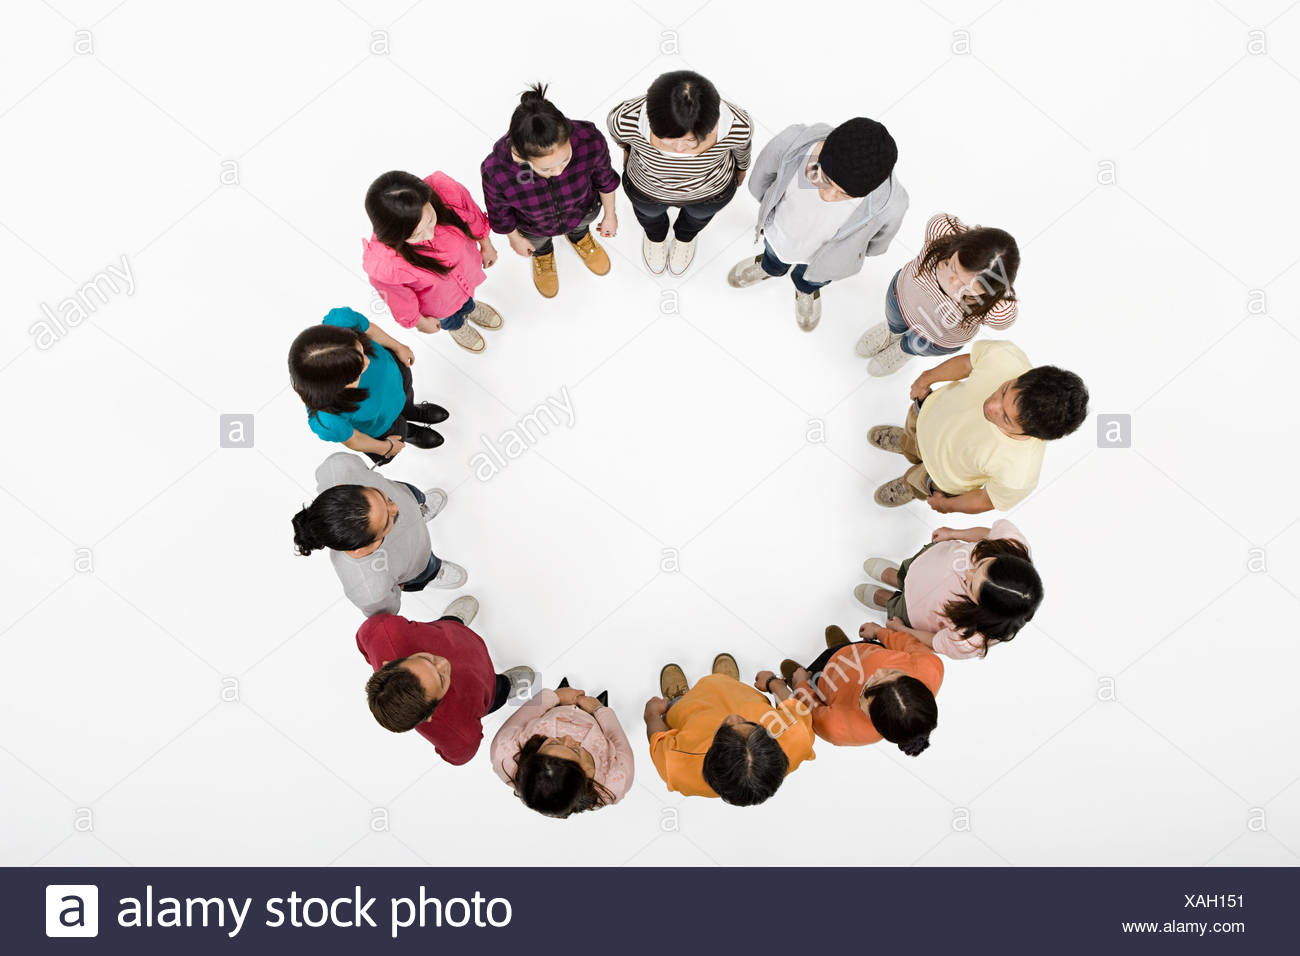 People in a circle - Stock Image